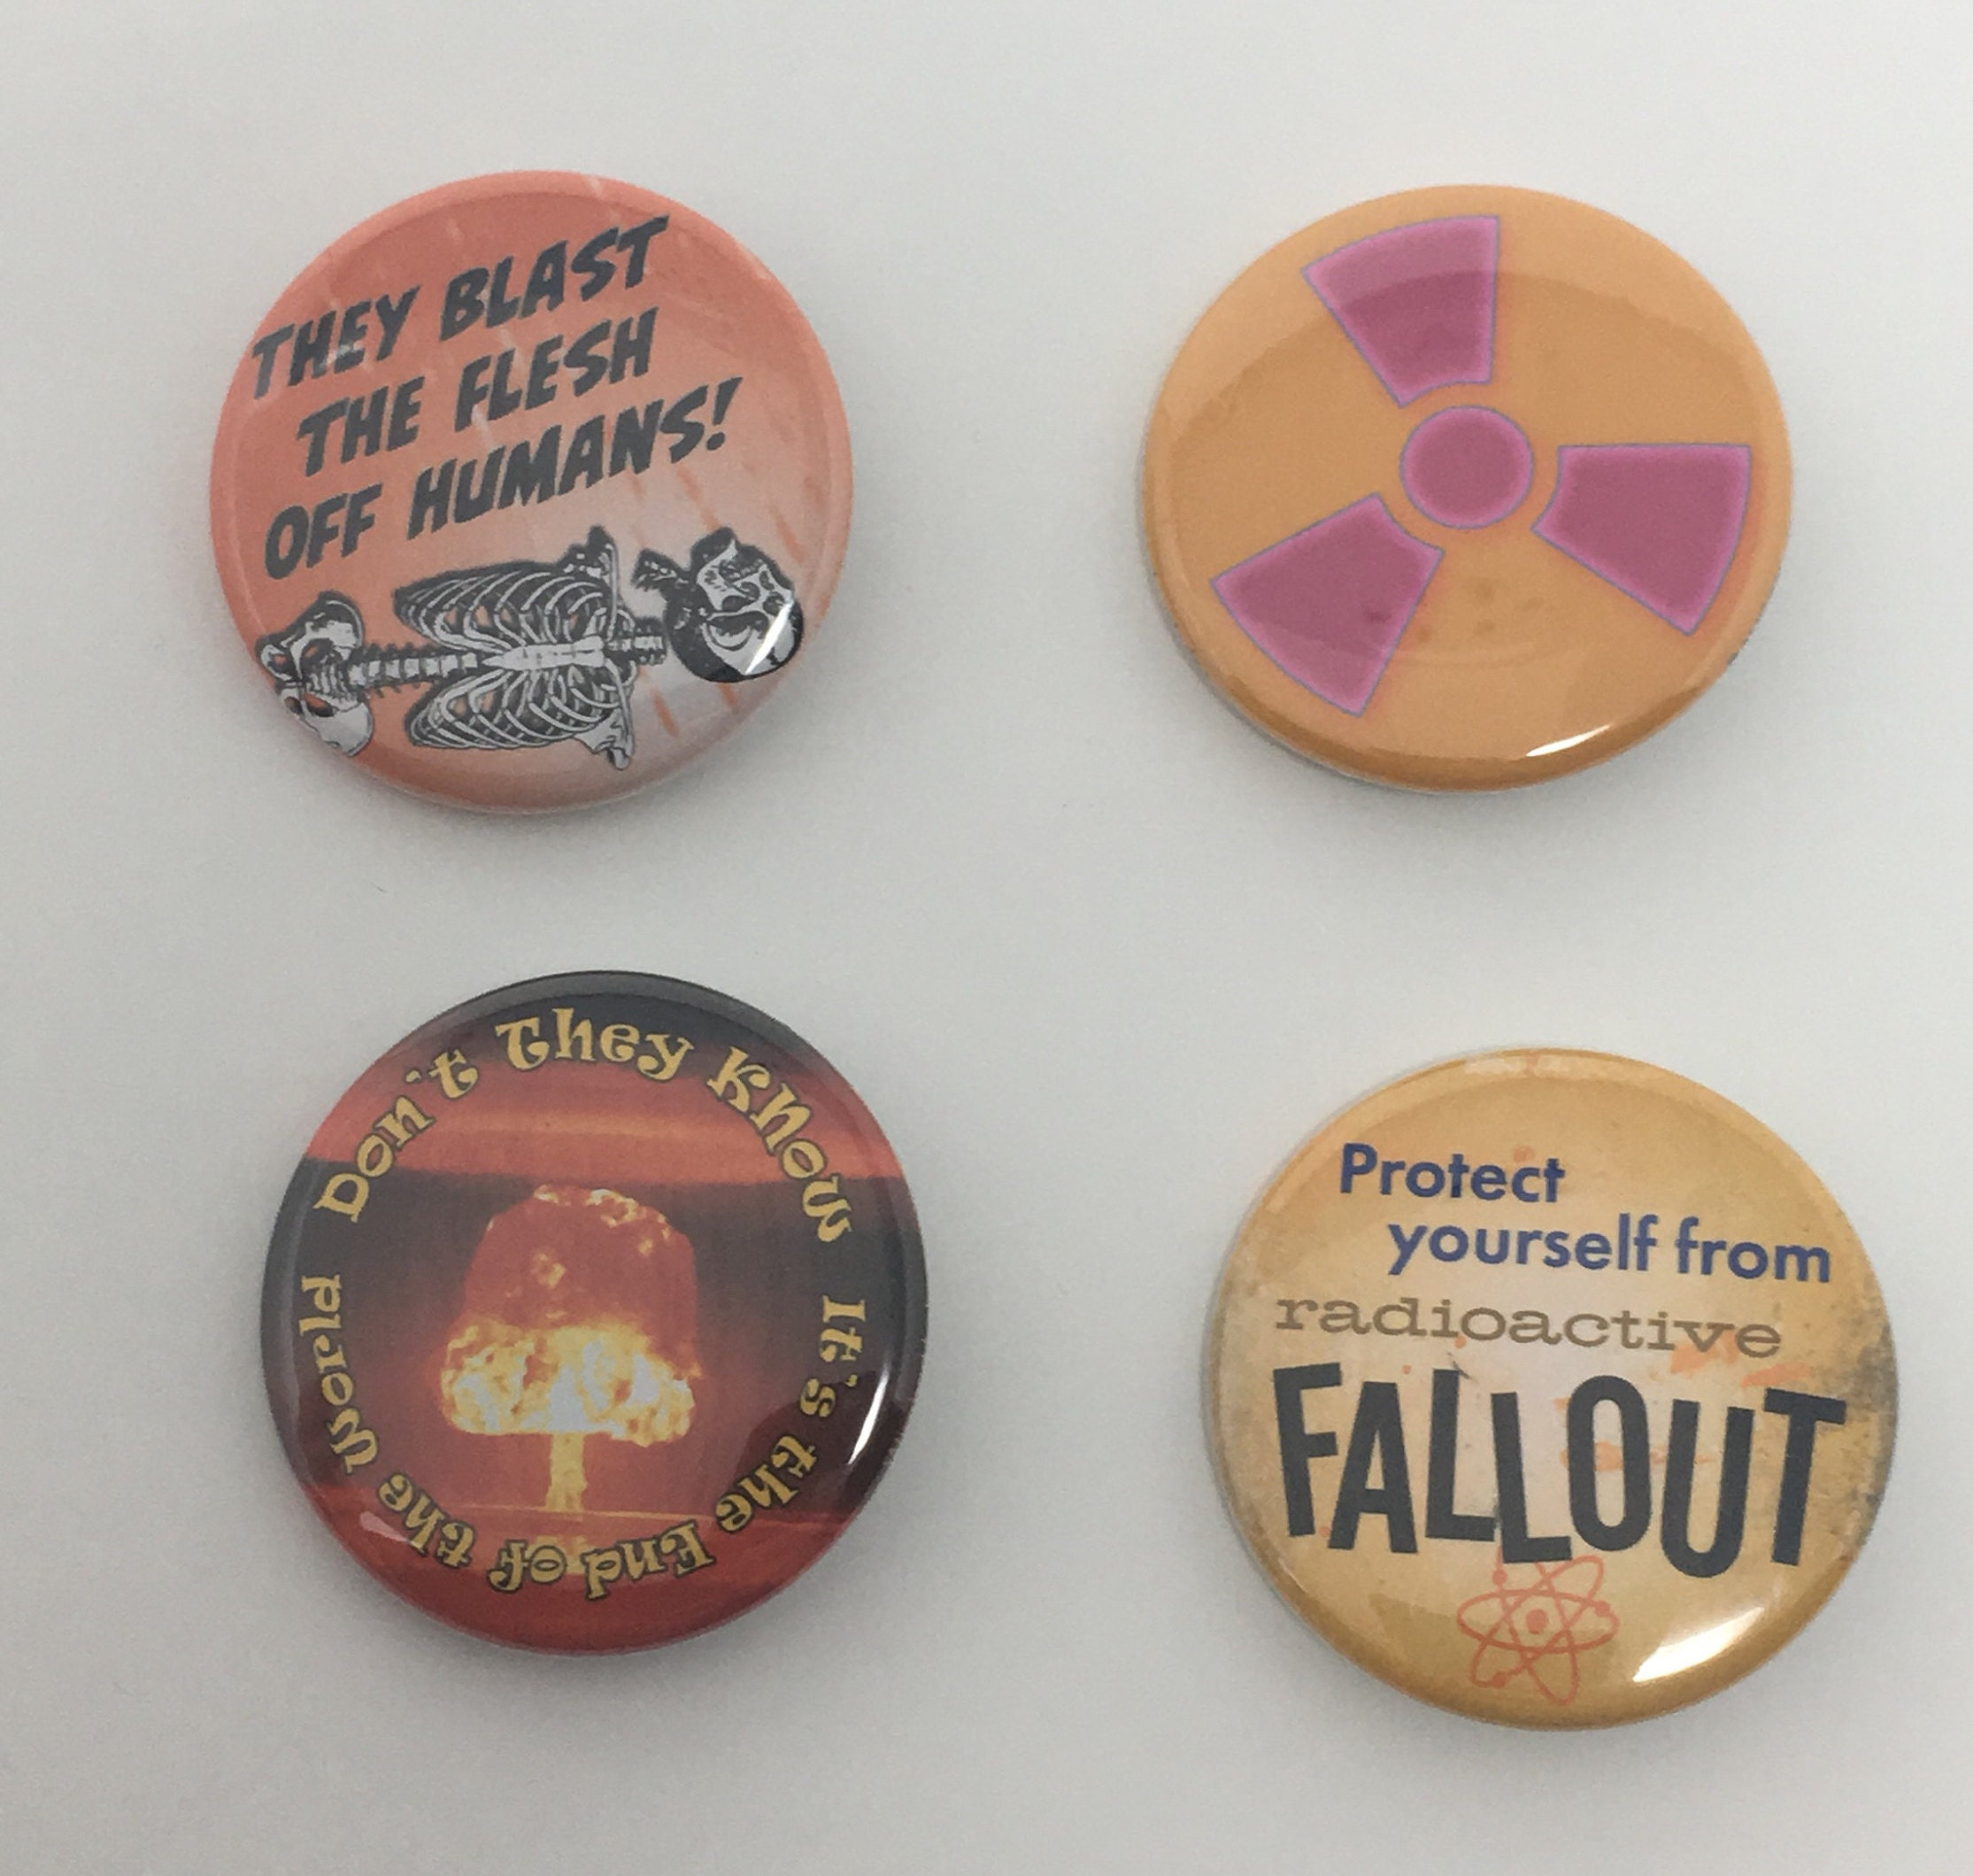 DEATH RACE 2000 pinback button set 1.5 and 1 buttons! Five button set Roger Corman cult classic starring David Carradine as Frankenstein